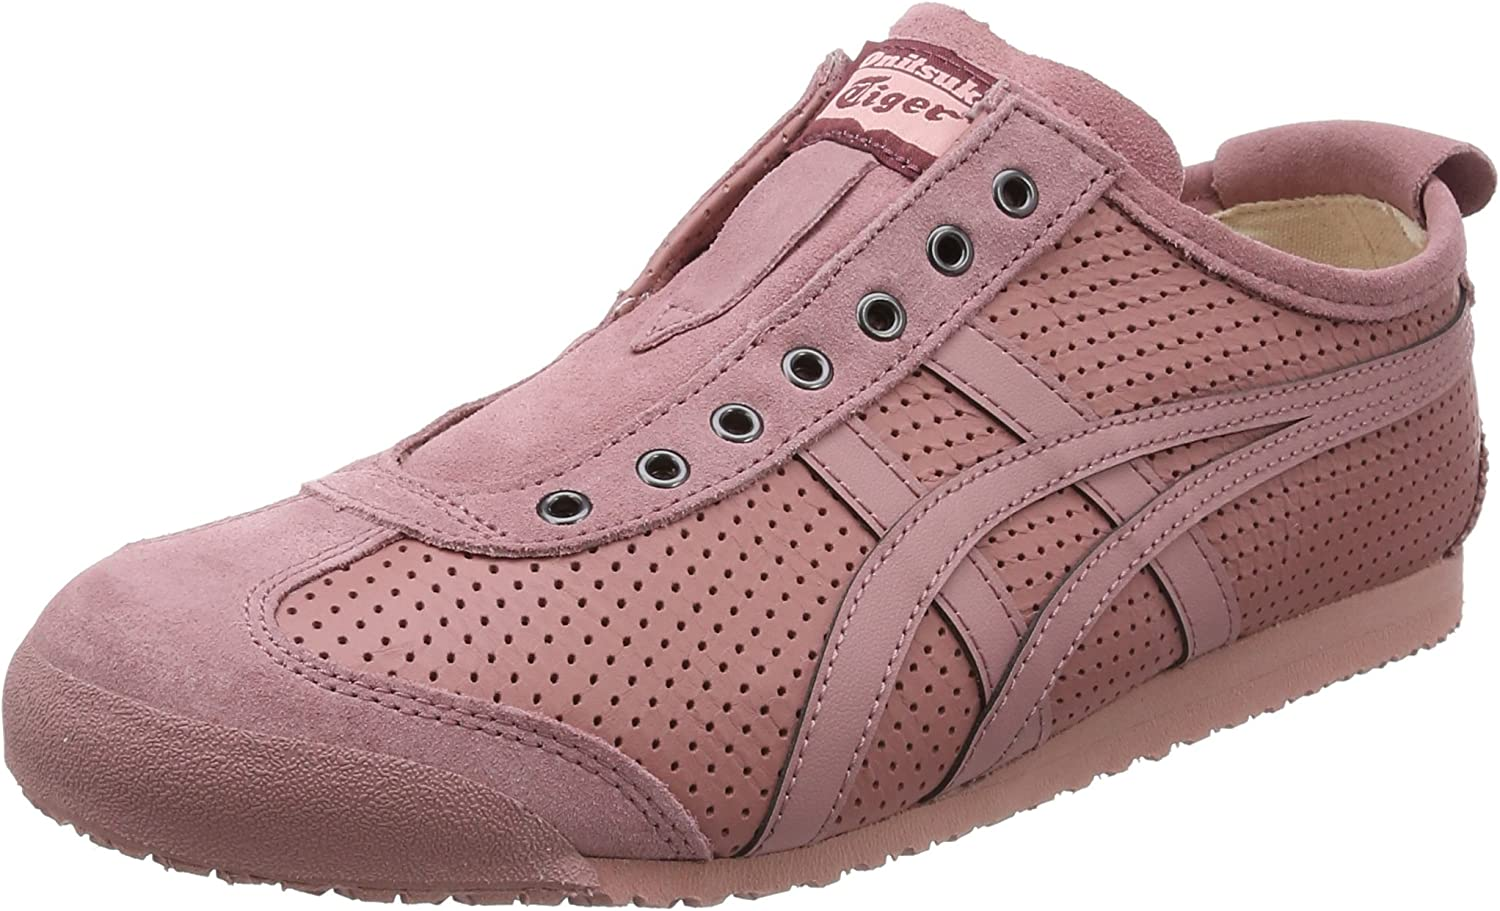 ASICS Unisex Adults' Mexico 66 Slip-on Low-Top Sneakers